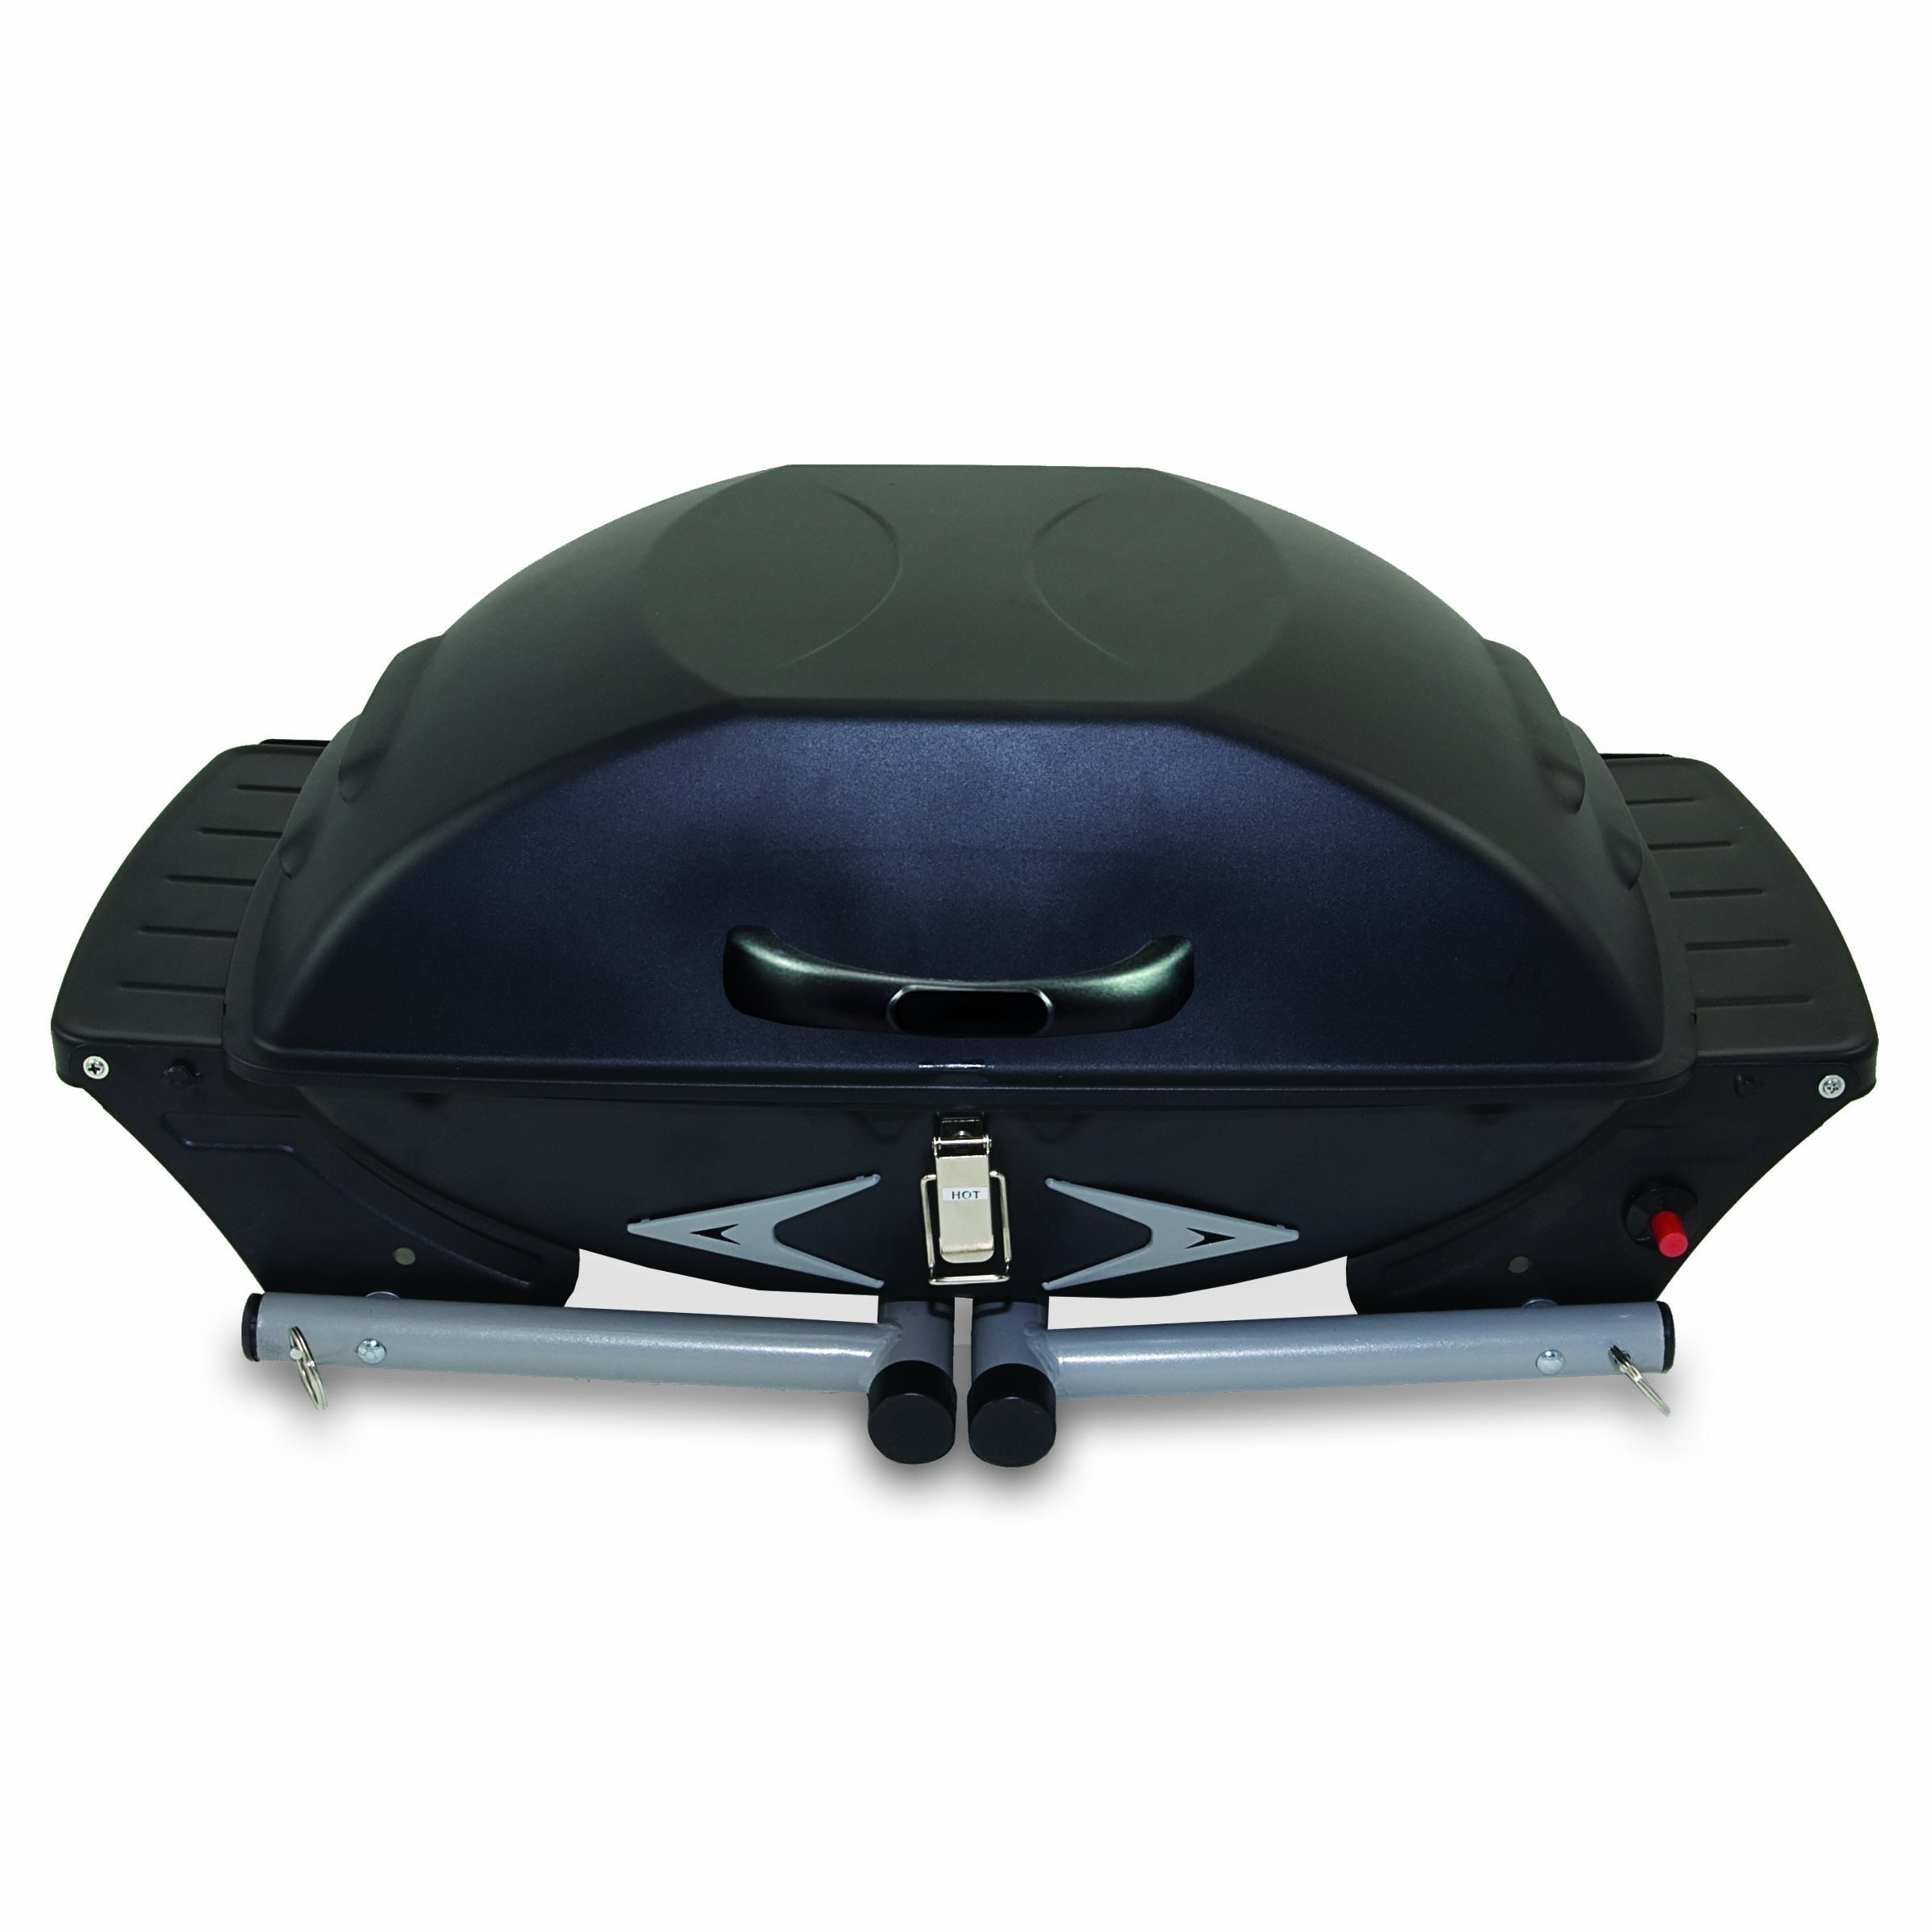 Picnic Time Portagrillo Portable Propane BBQ Grill by ONIVA - a Picnic Time brand (Image #4)